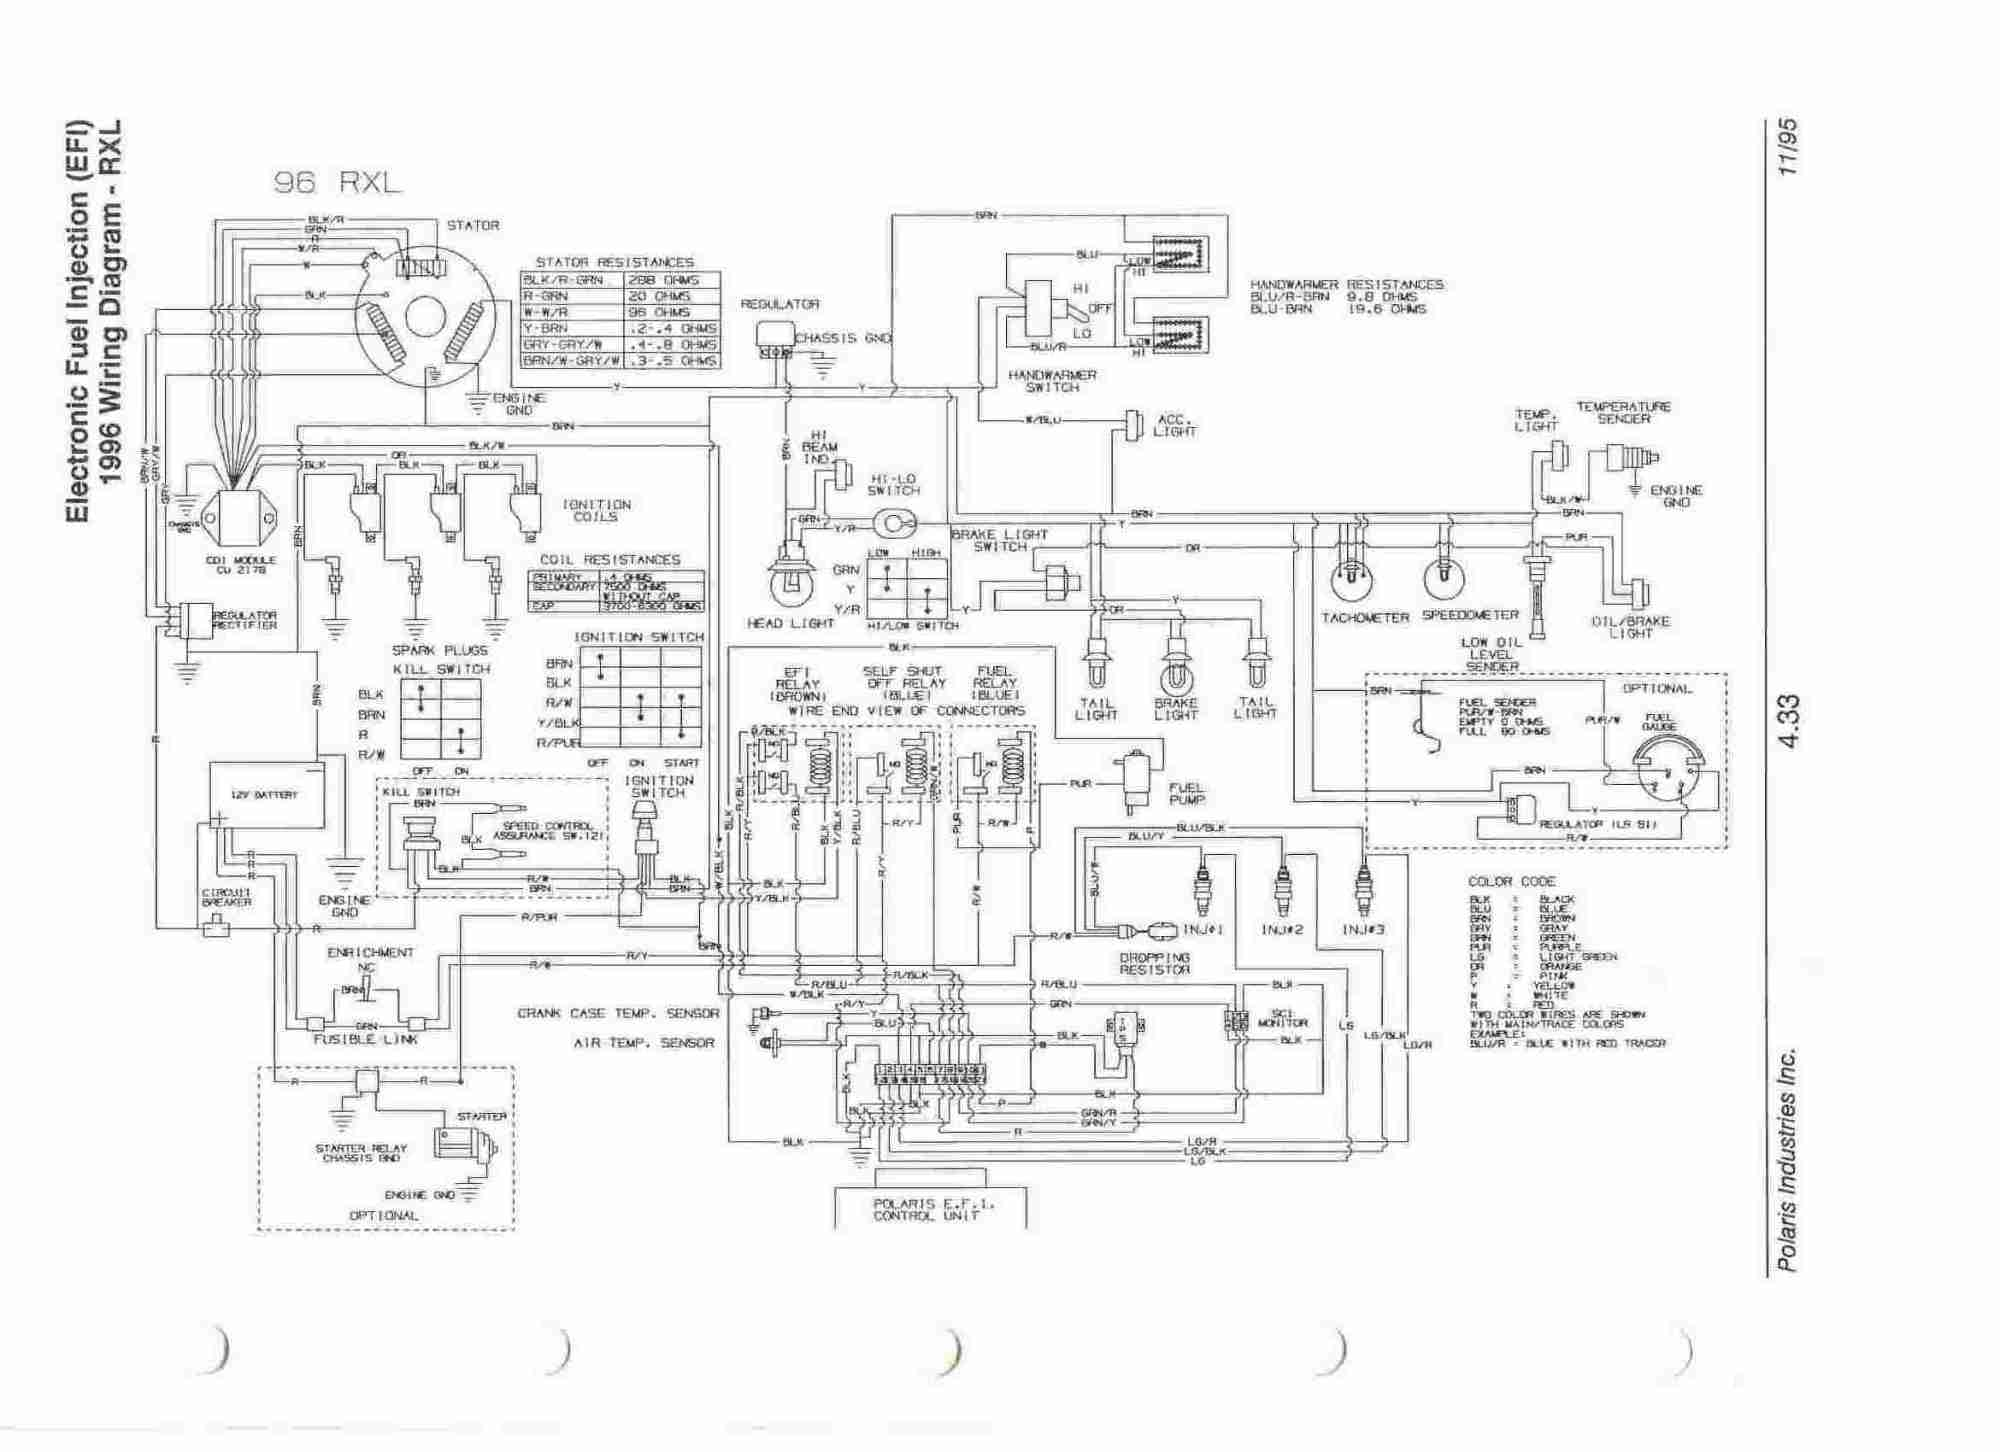 hight resolution of polaris rush wiring diagram schematic diagrams rh 42 fitness mit trampolin de polaris atv wiring diagram